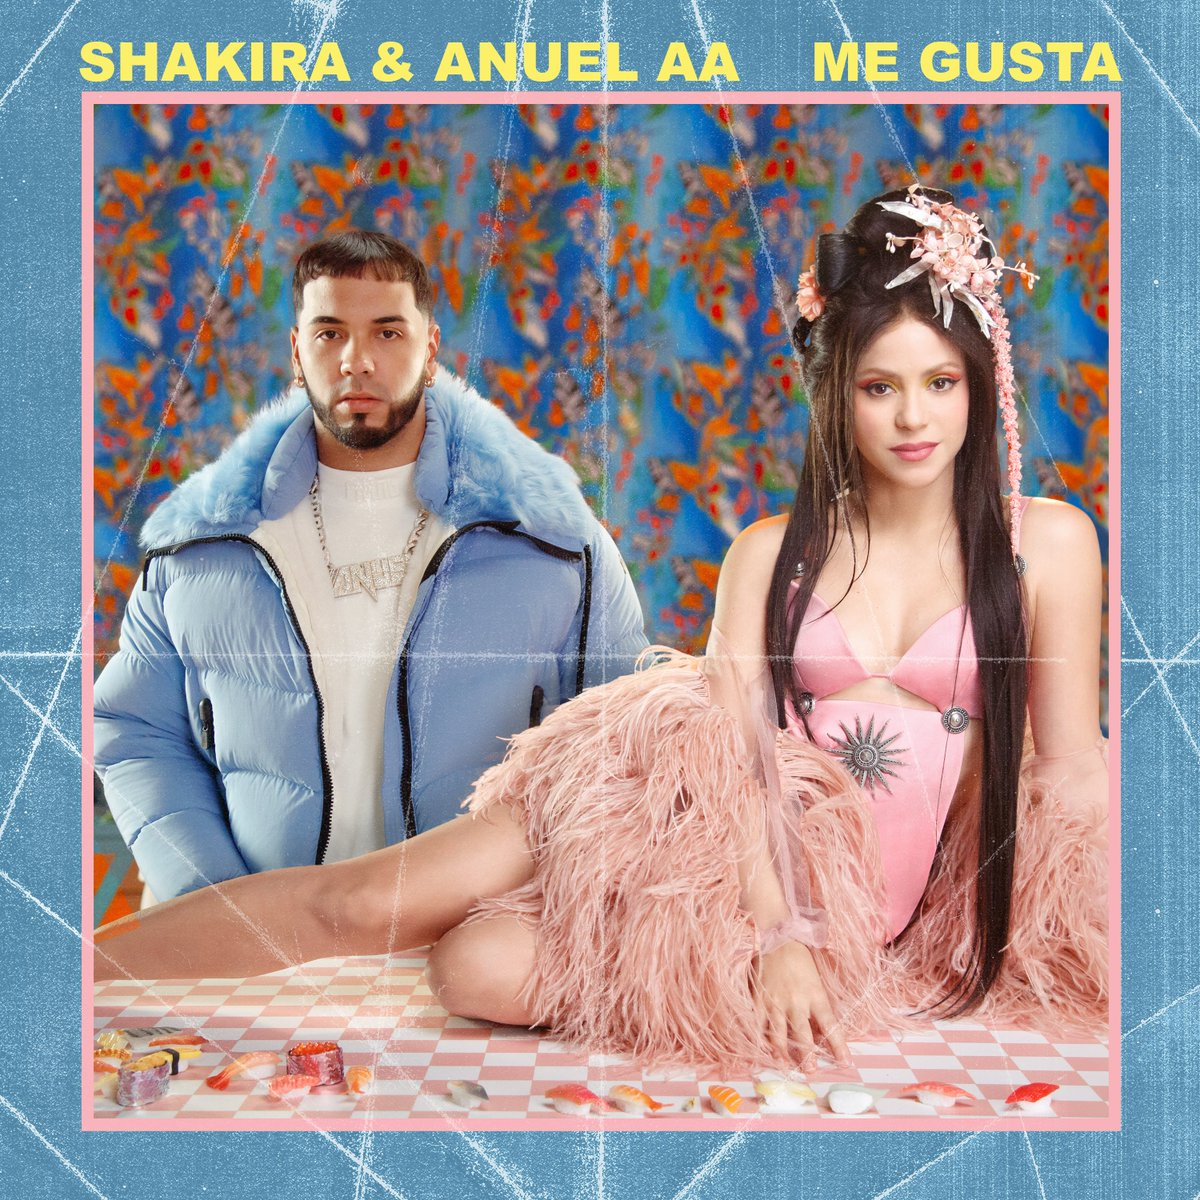 @shakira's photo on Anuel